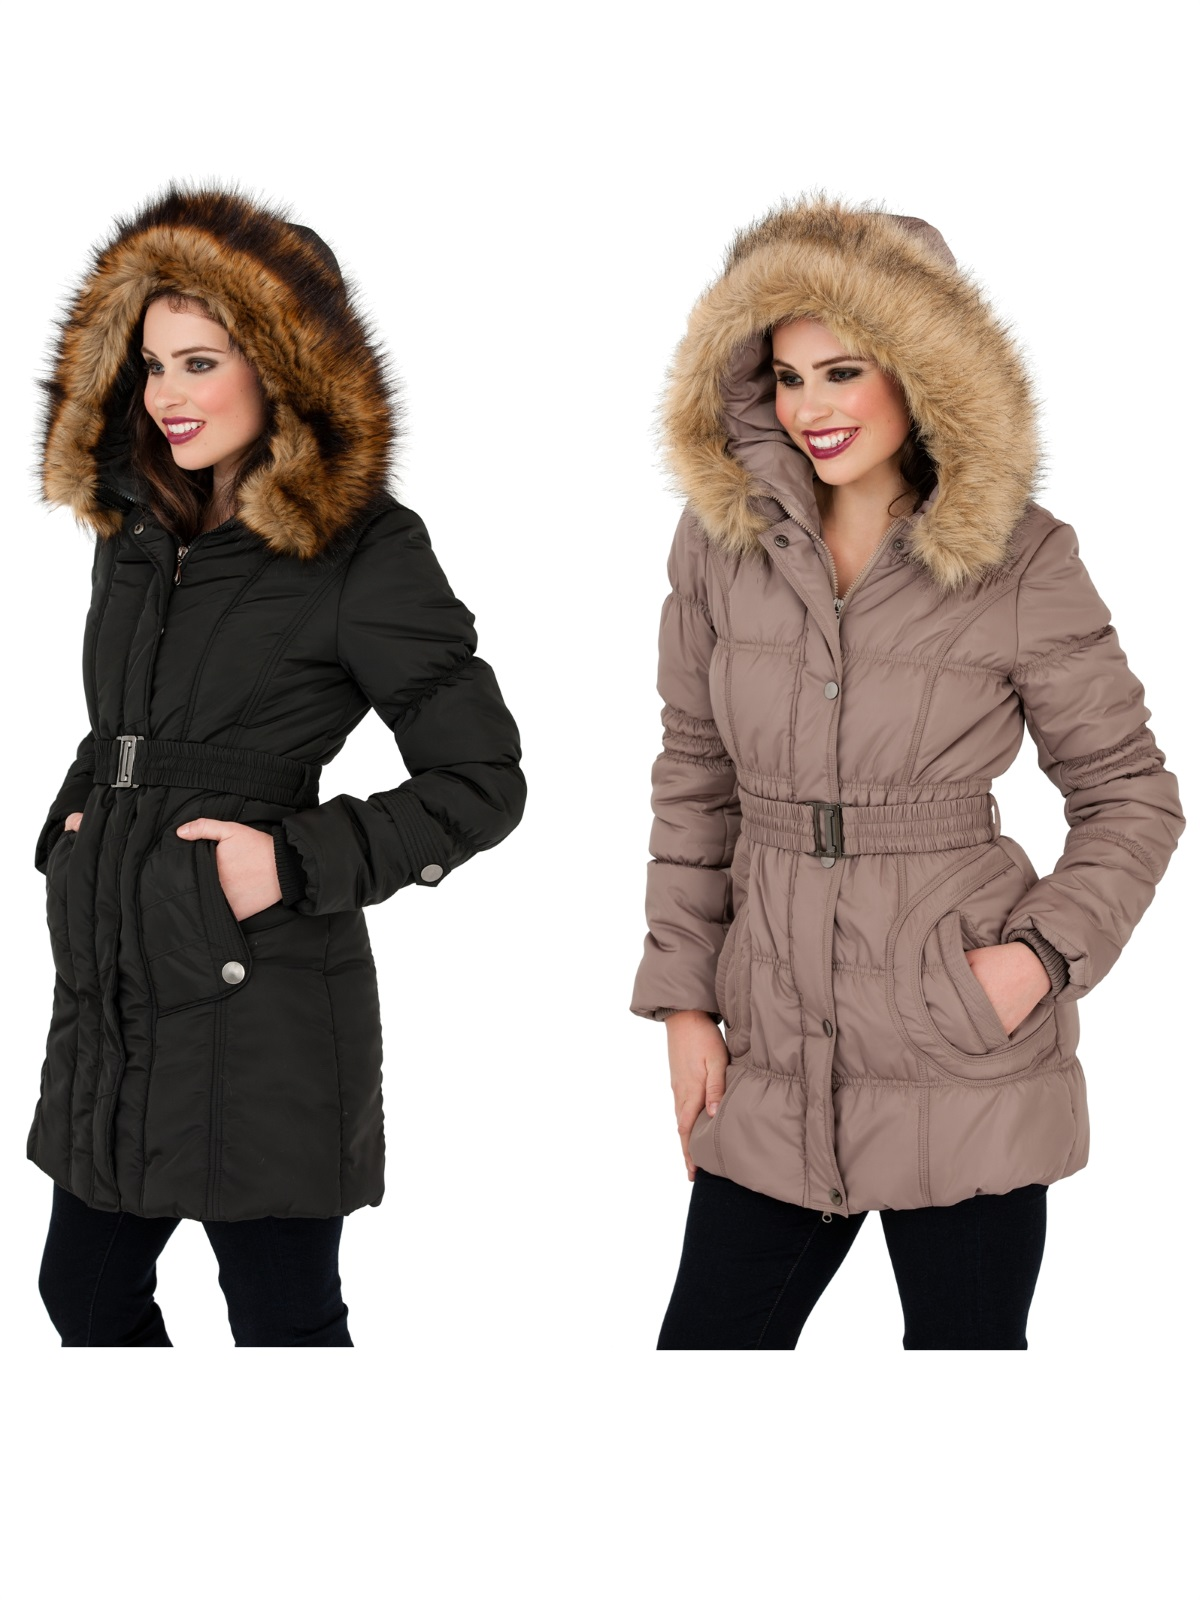 Greet chills and hit the hill harder. Women's insulated jackets and winter jackets by The North Face pack weather protection, warmth and active style.